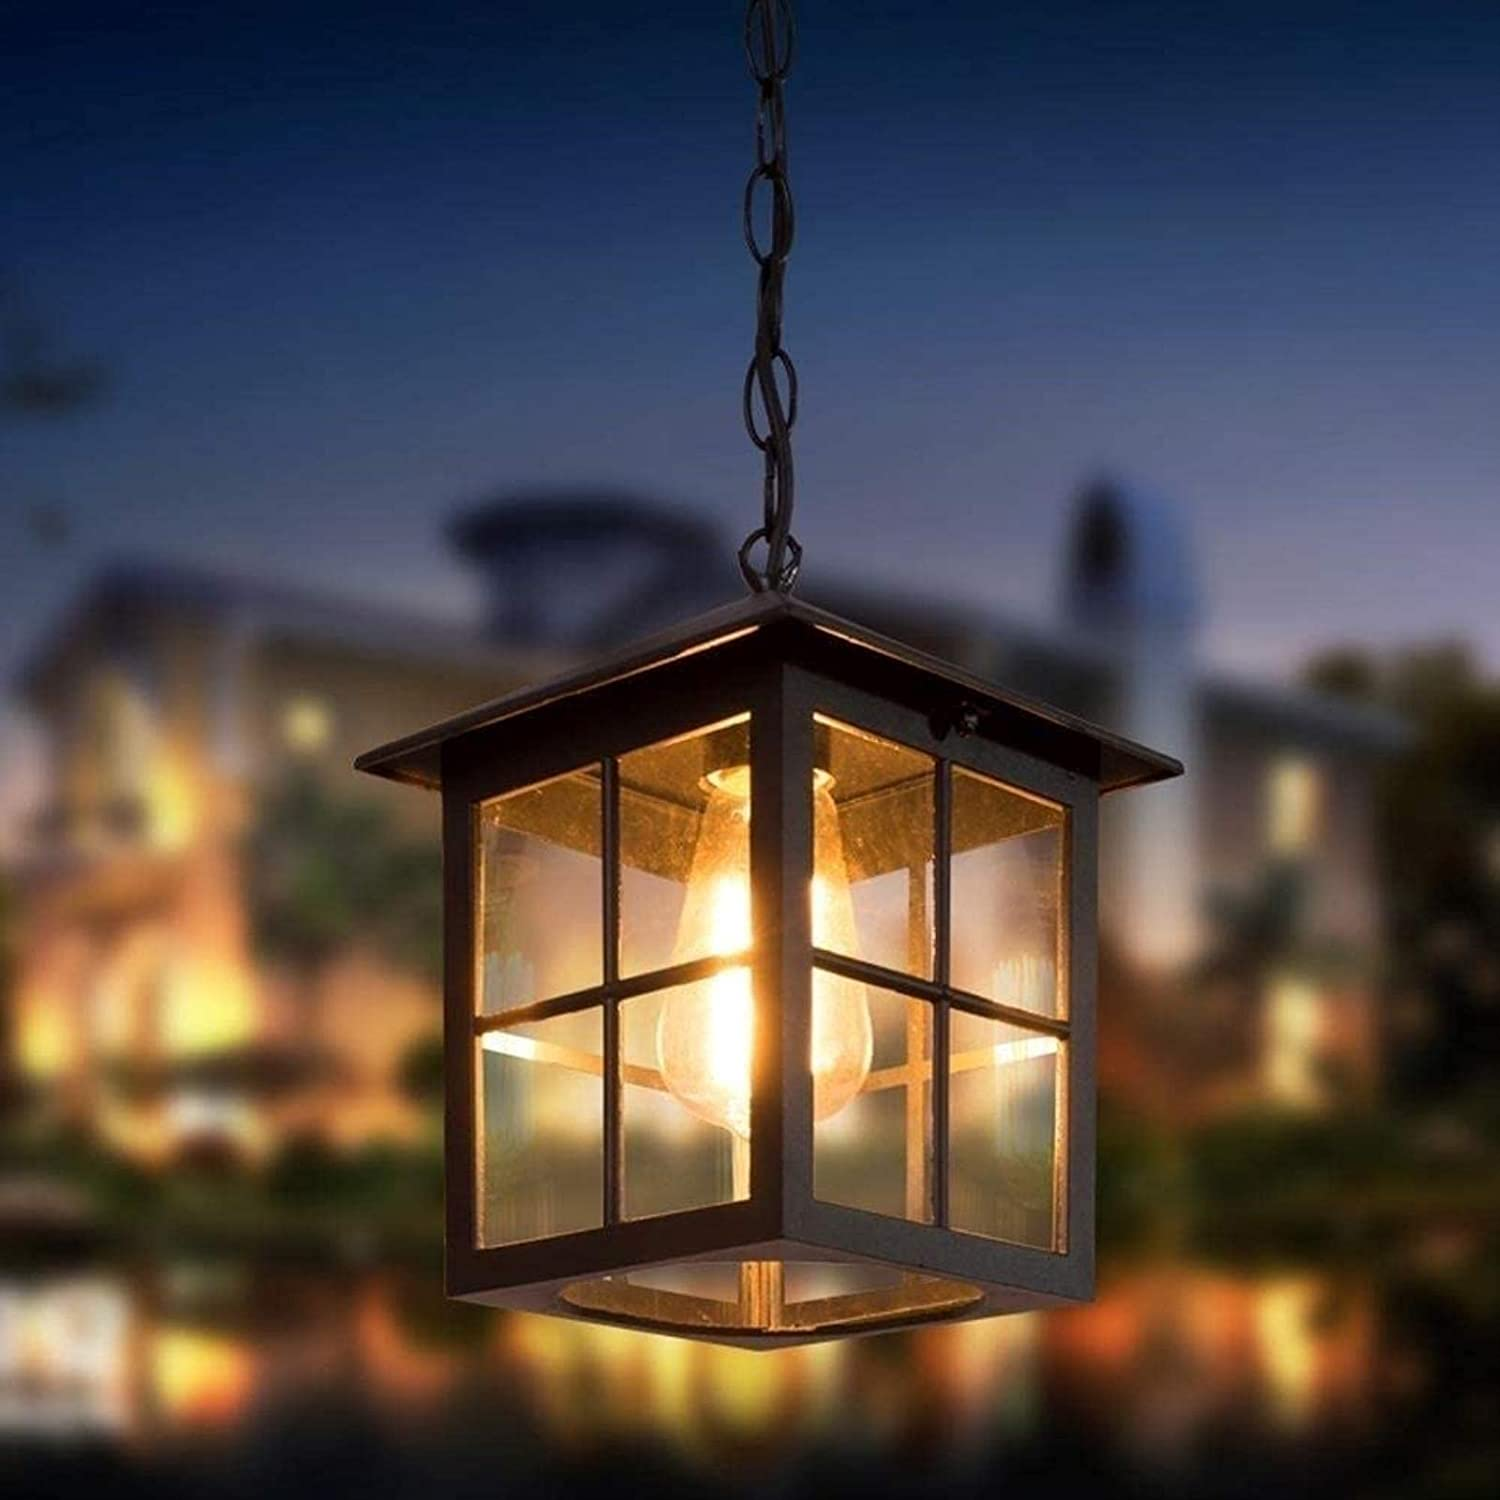 Farmhouse Chandelier European Small New item Square Ranking TOP4 Waterproof